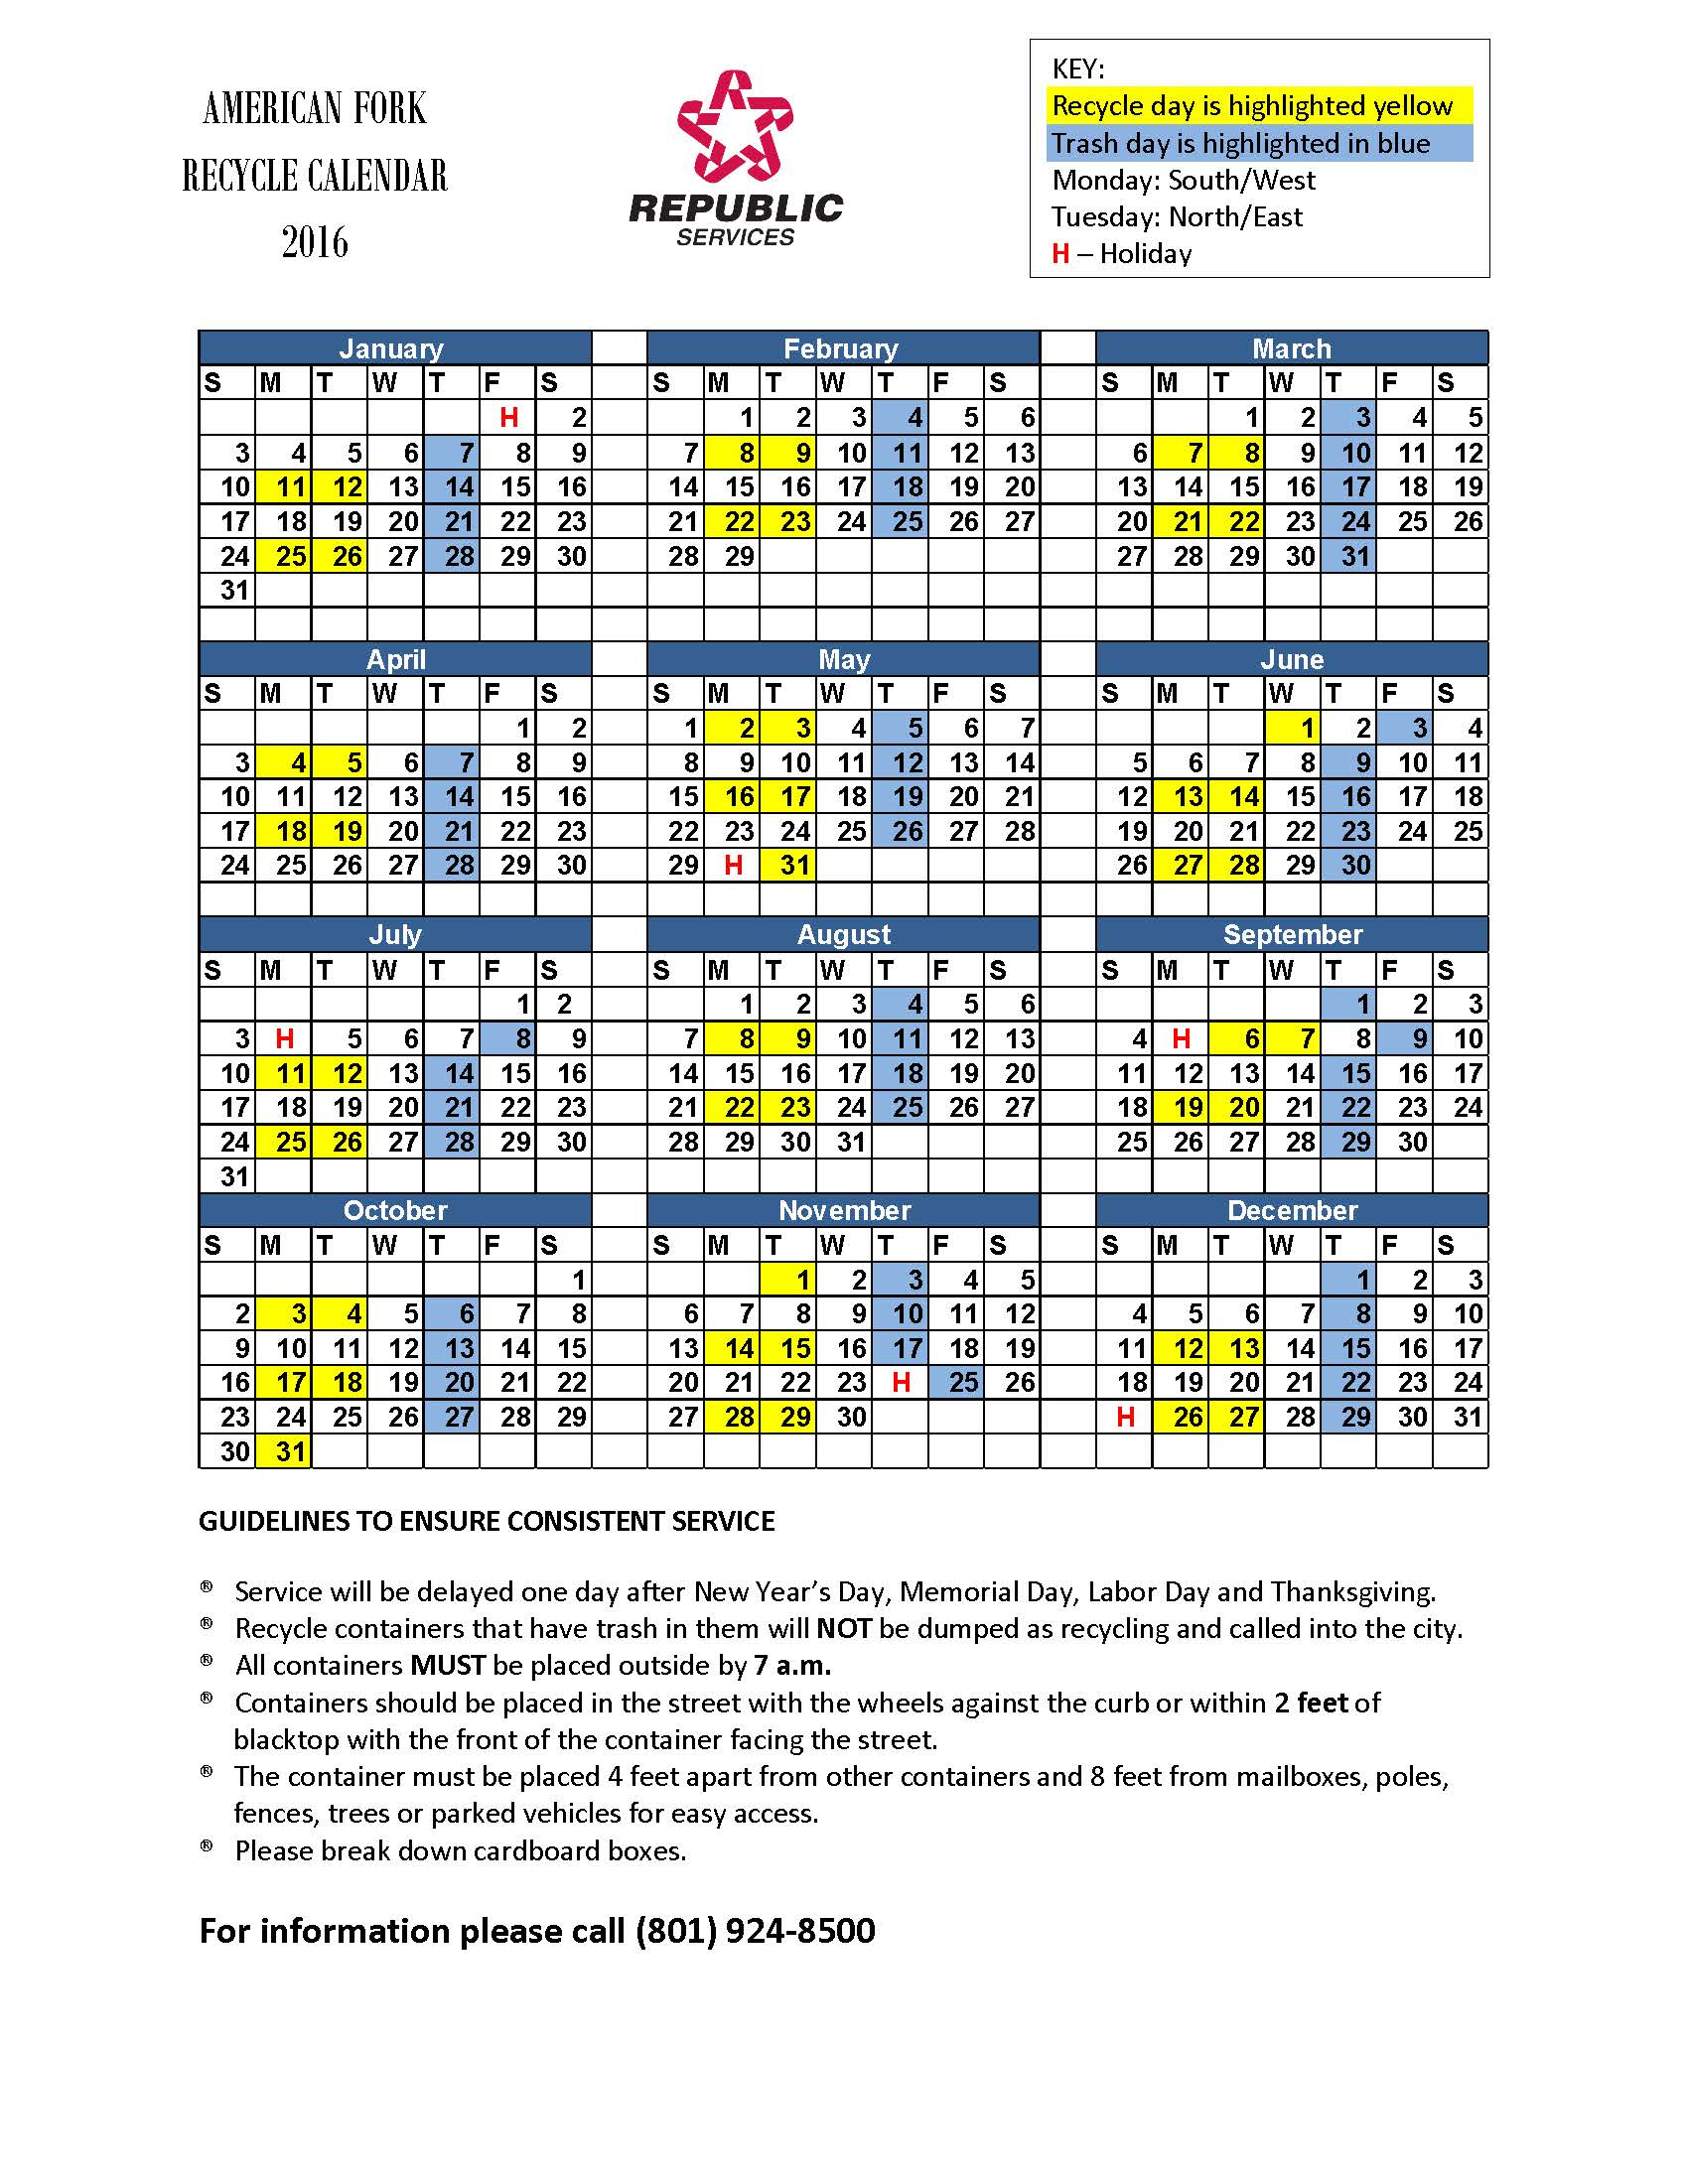 American Fork Garbage and Recycling Calendar 2016